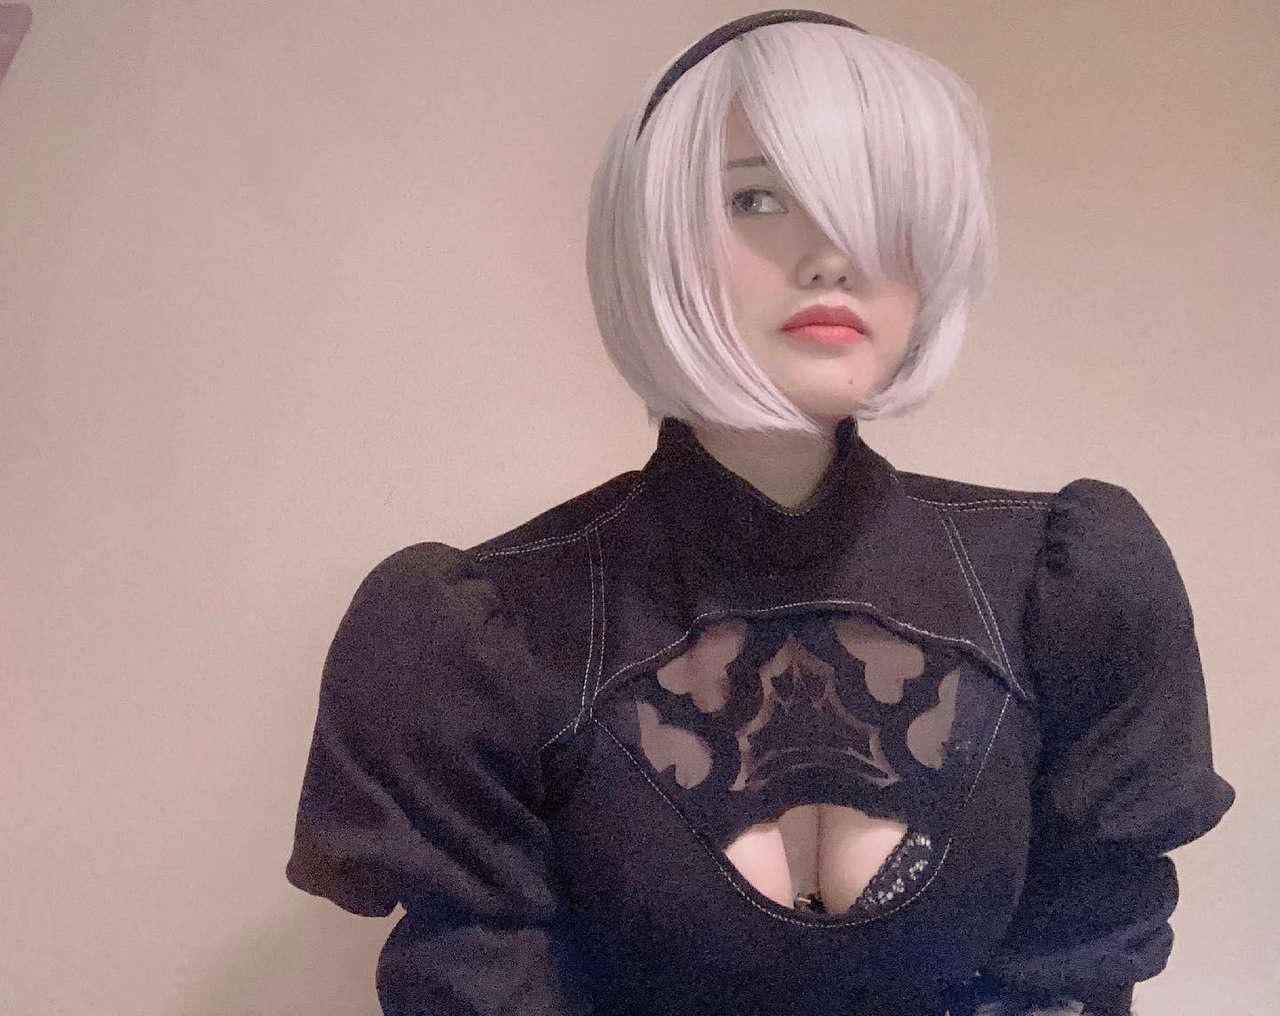 Still Working On The Skirt But First Time 2b Cospla